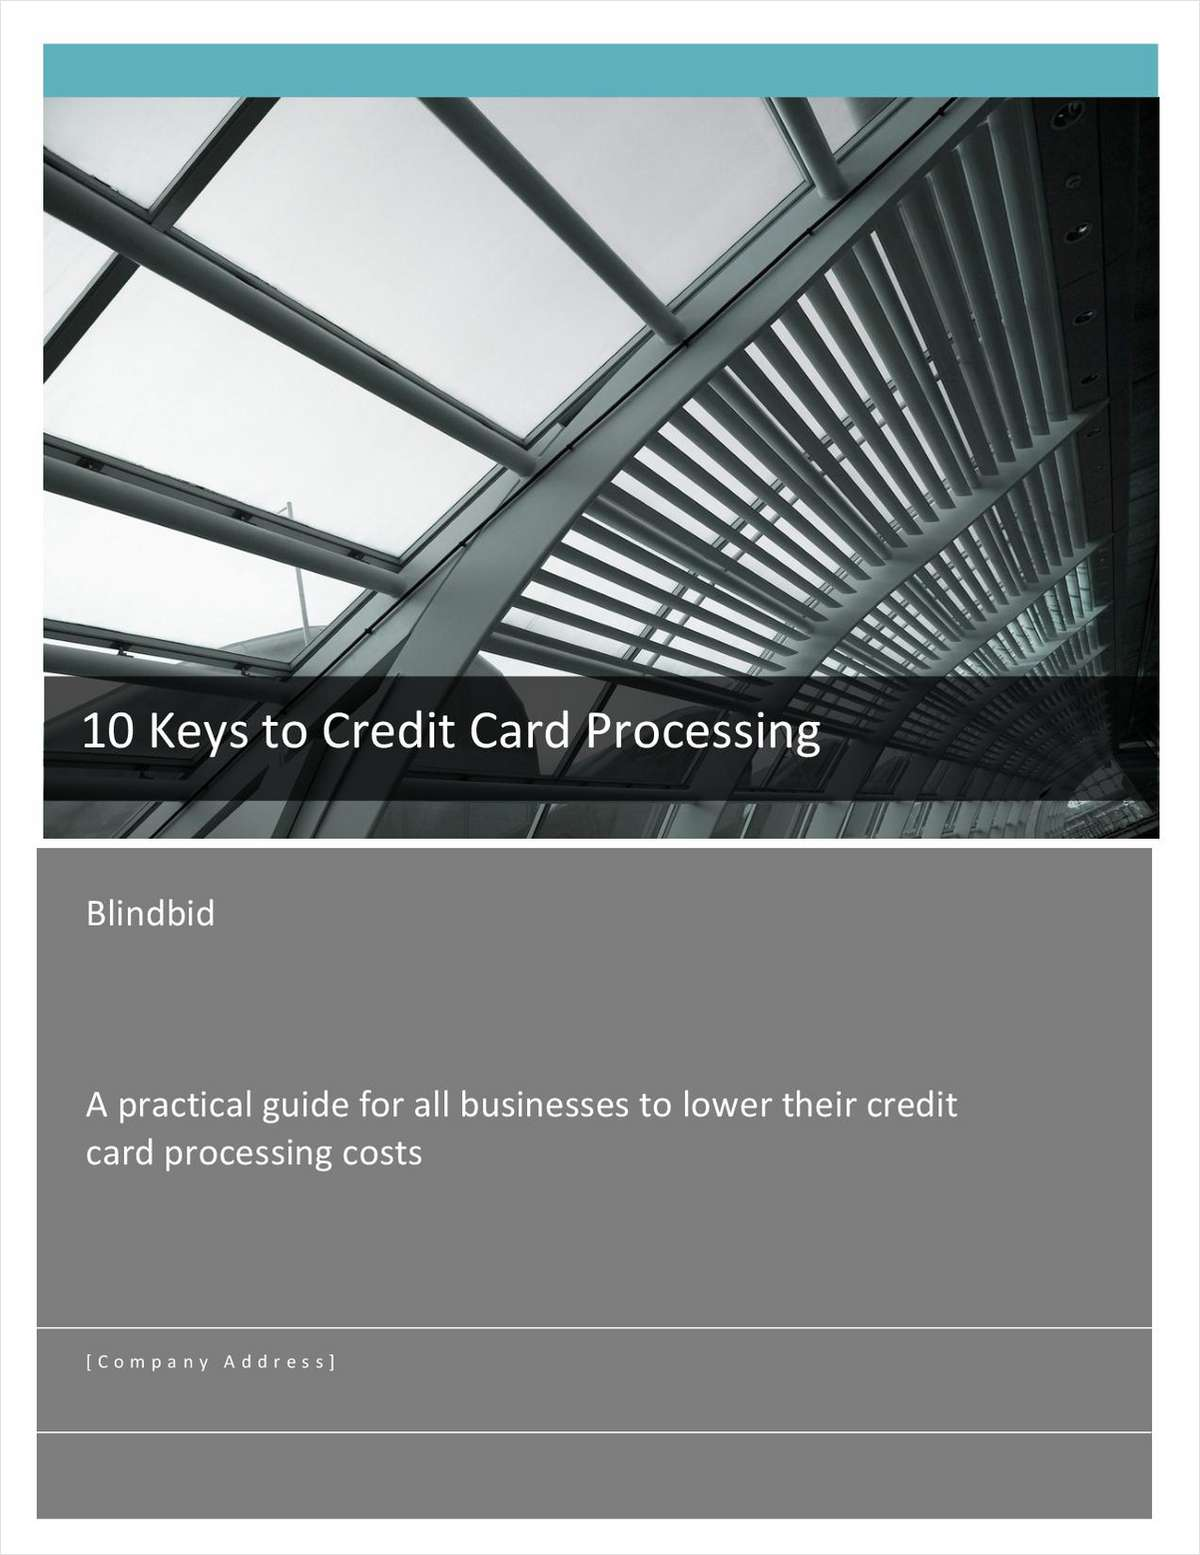 10 Keys to Credit Card Processing